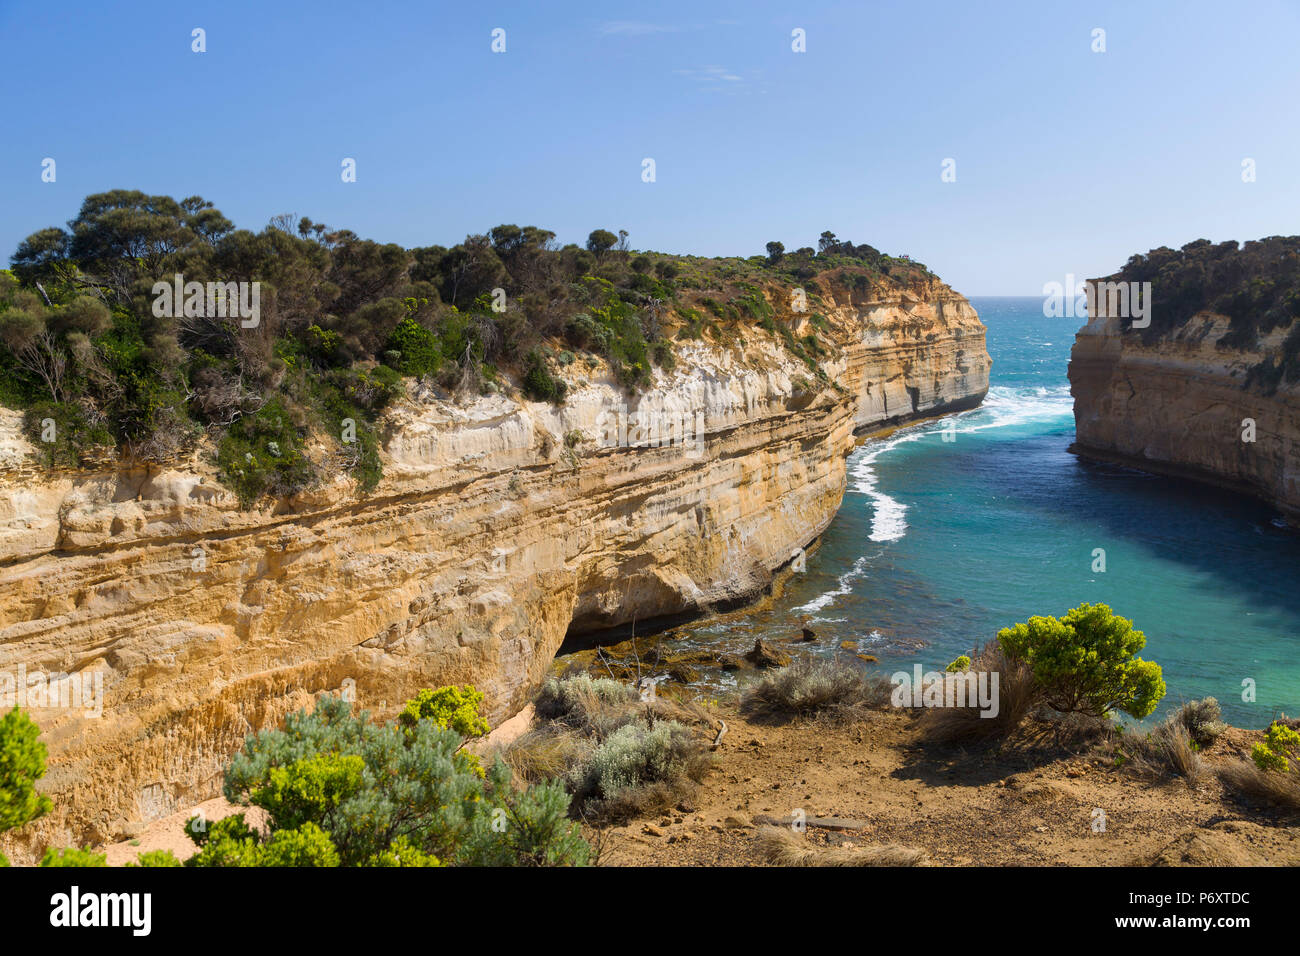 Loch Ard Gorge, Port Campbell National Park, Great Ocean Road, Victoria, Australie Photo Stock